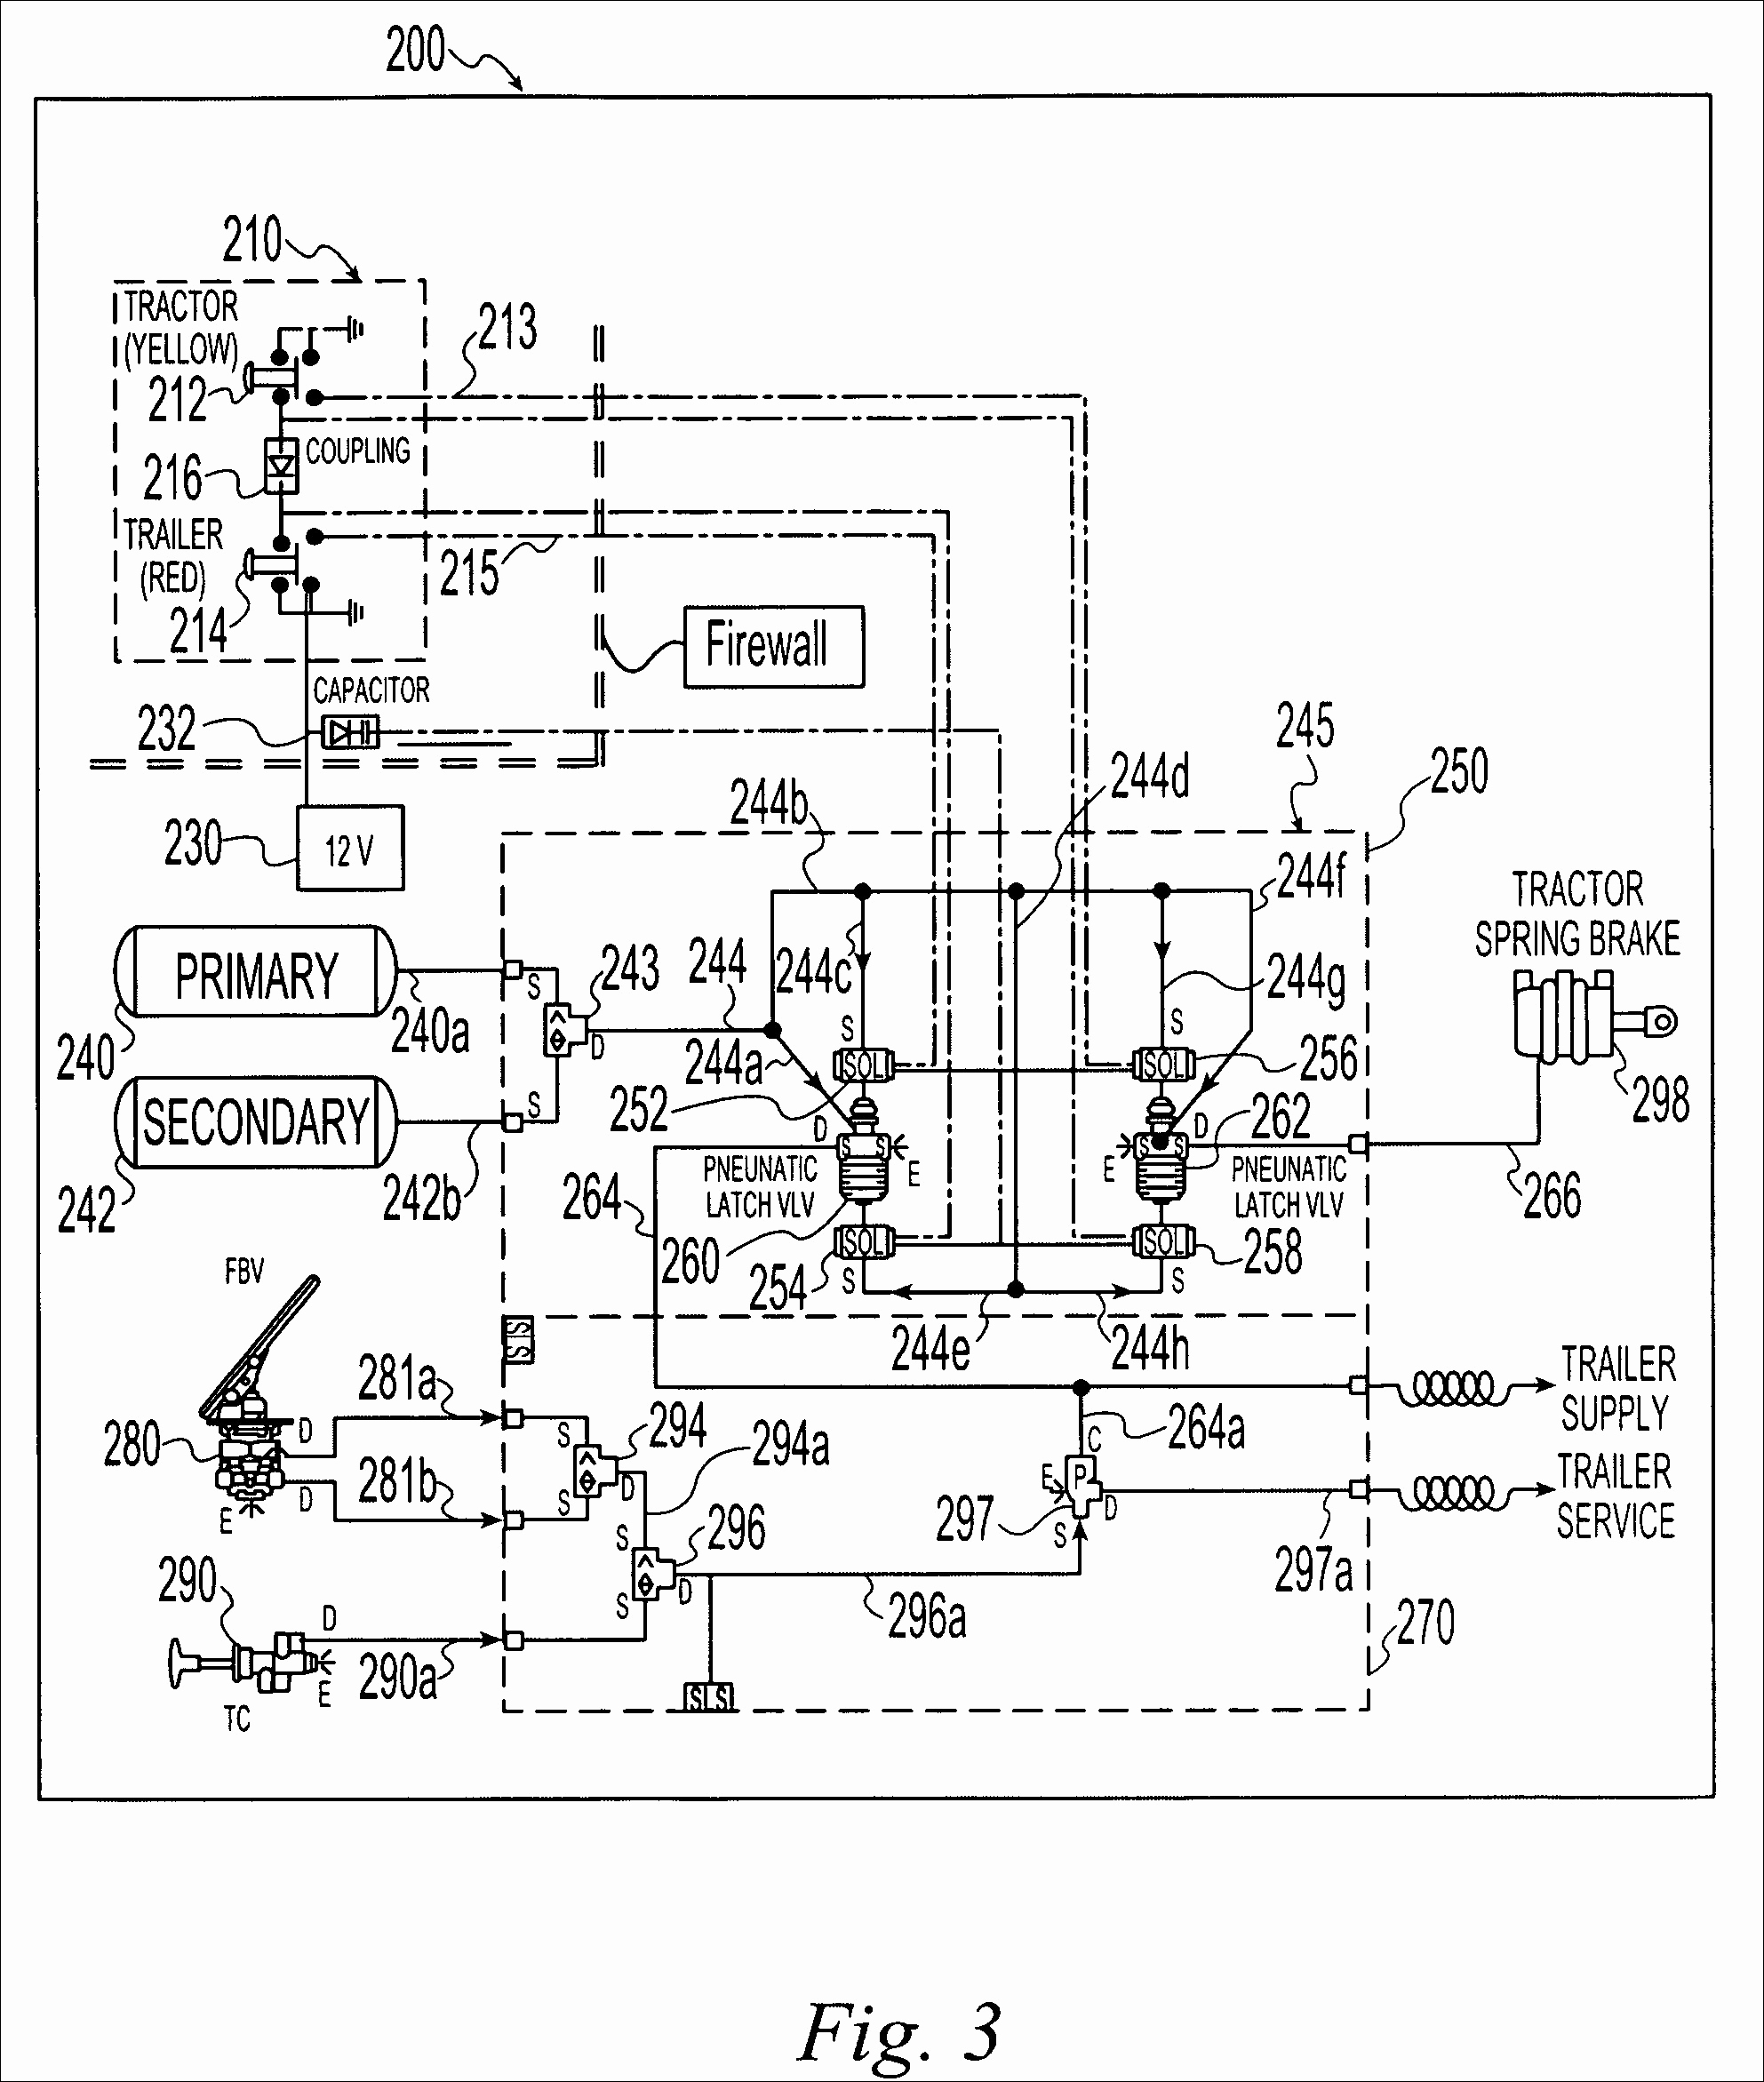 1997 Chevy Silverado Trailer Wiring Diagram Wiring Diagram Rich Yap A Rich Yap A Lastanzadeltempo It